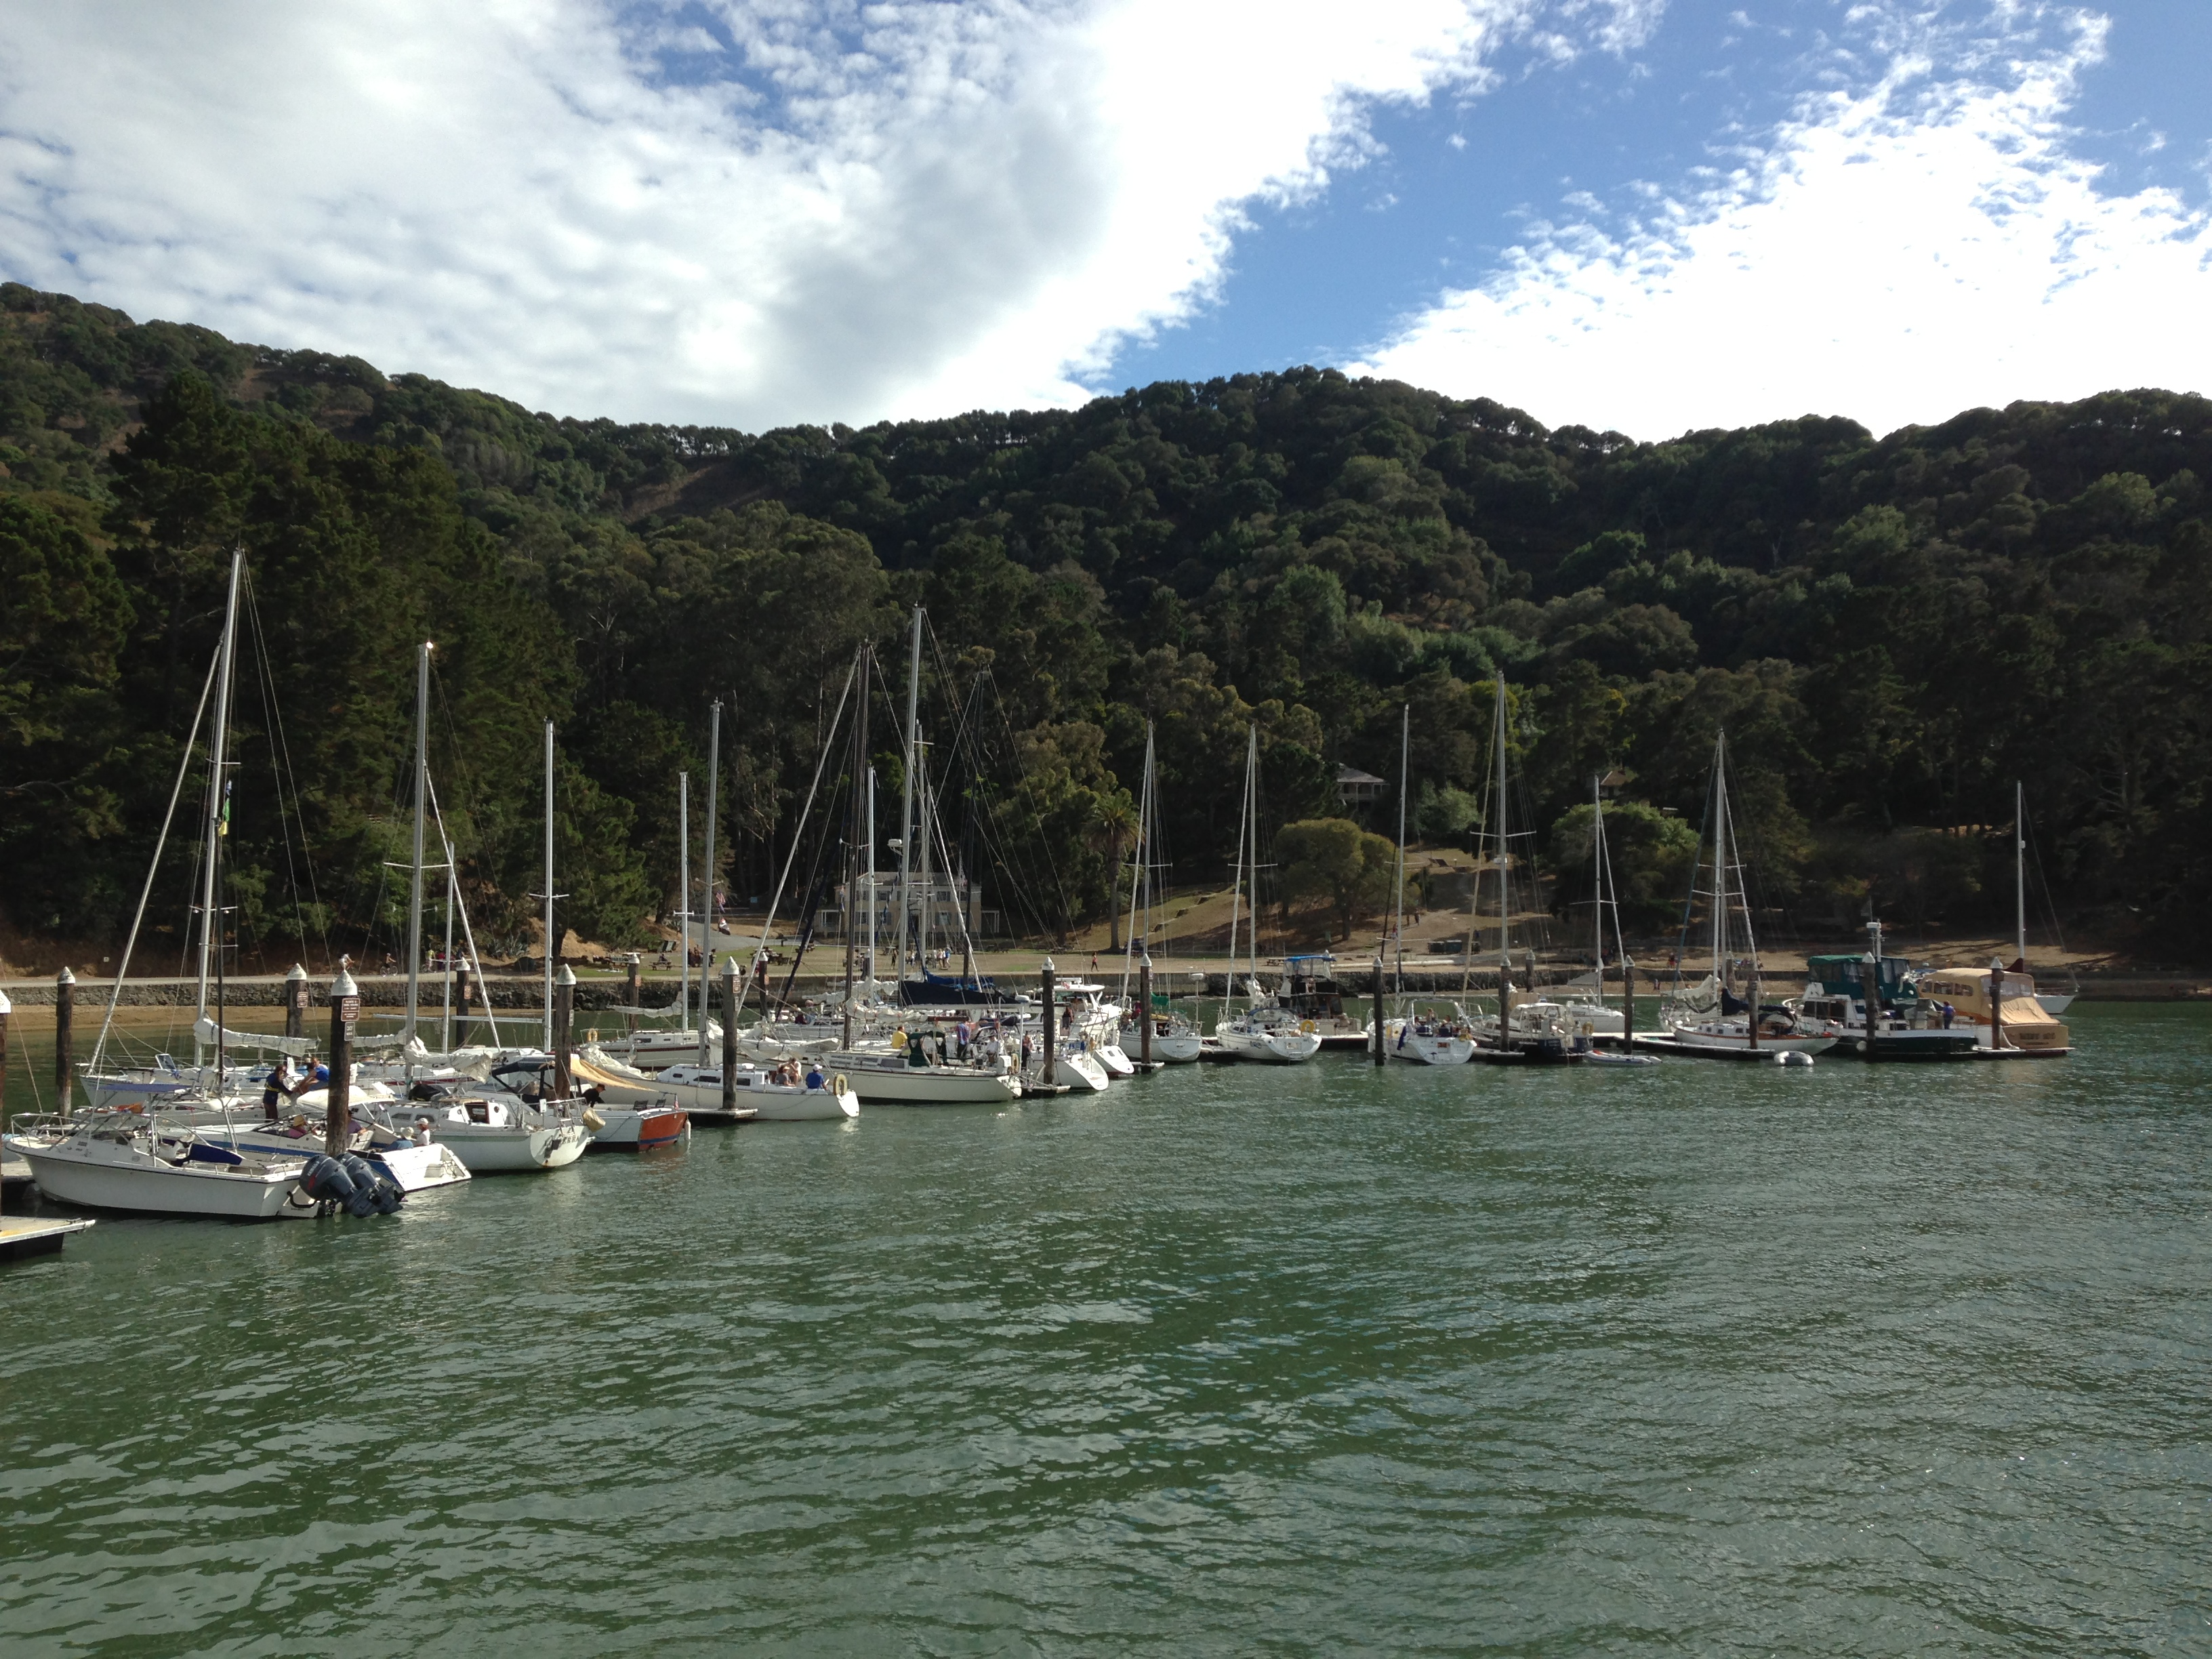 getaway to 'paradise' 7 days a week with angel island ferry